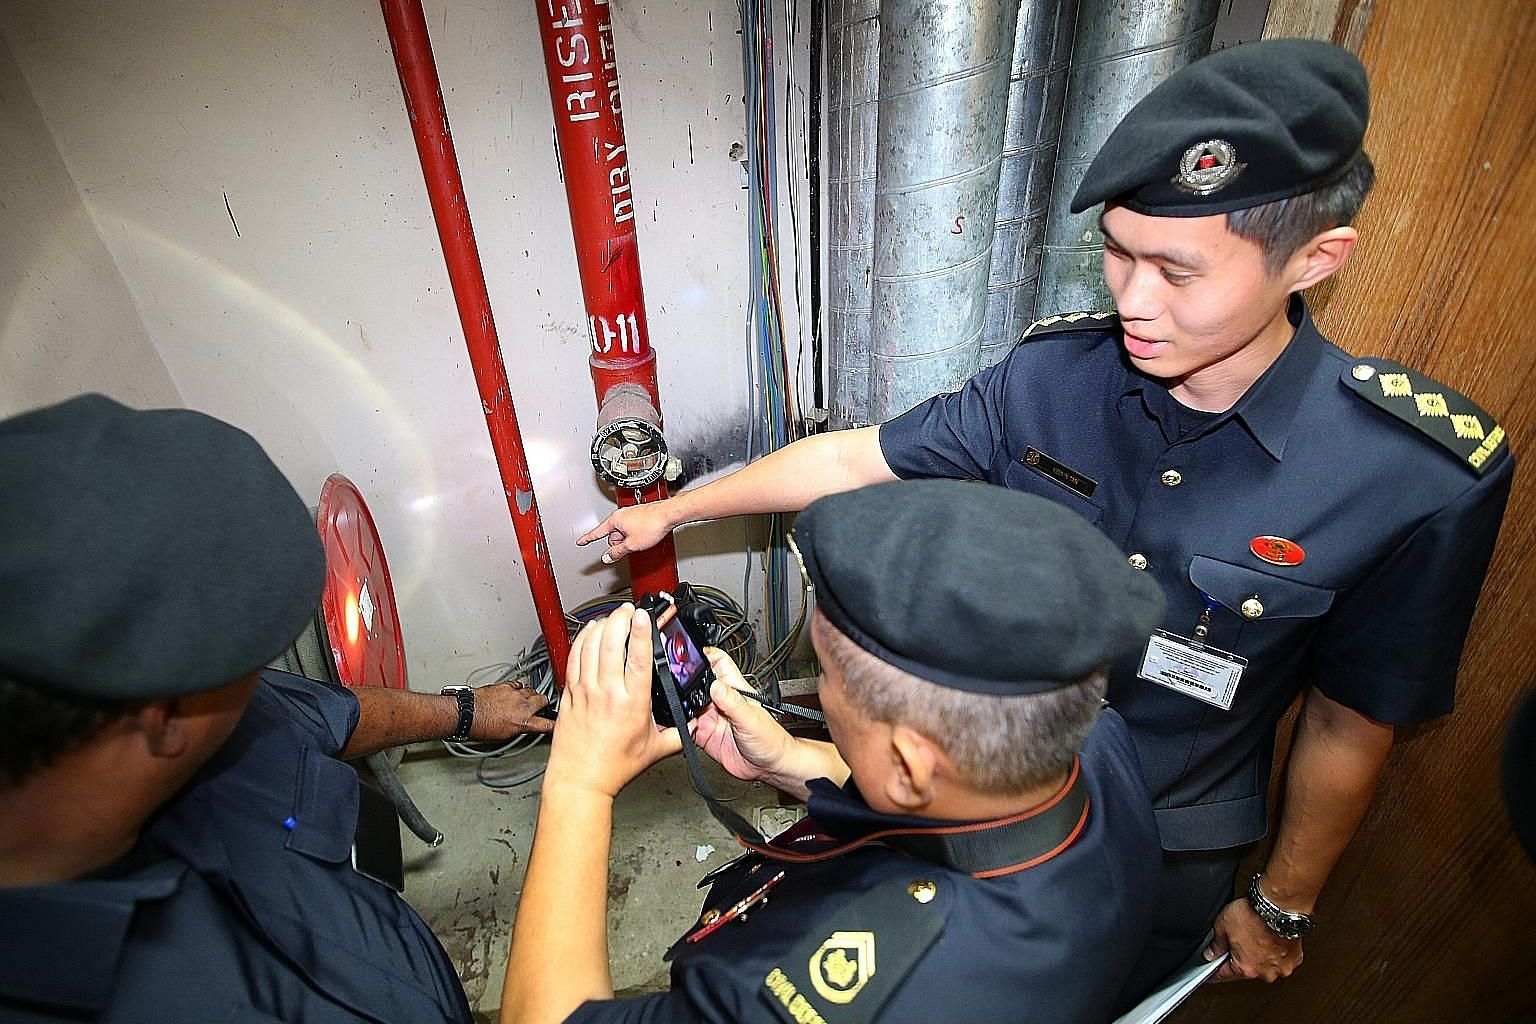 The SCDF does about 10,000 inspections yearly, which include scheduled checks as well as ad hoc ones, which are based on public feedback.